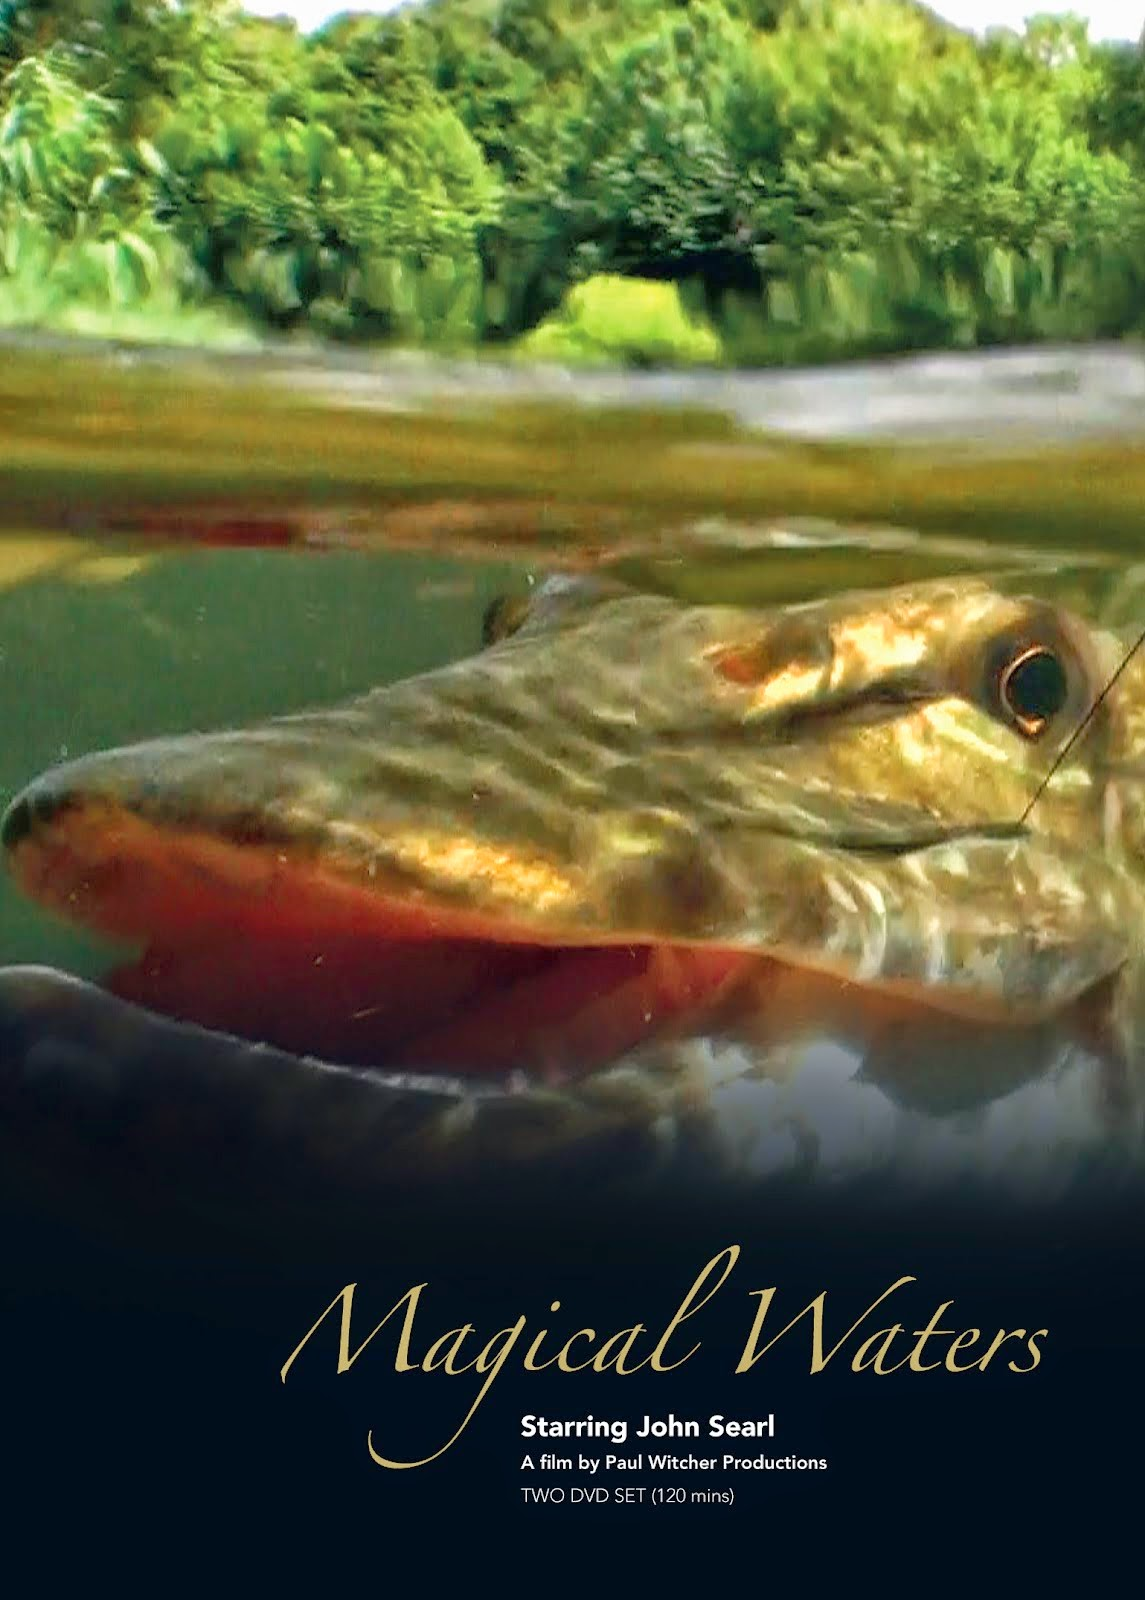 Magical Waters by Paul Witcher